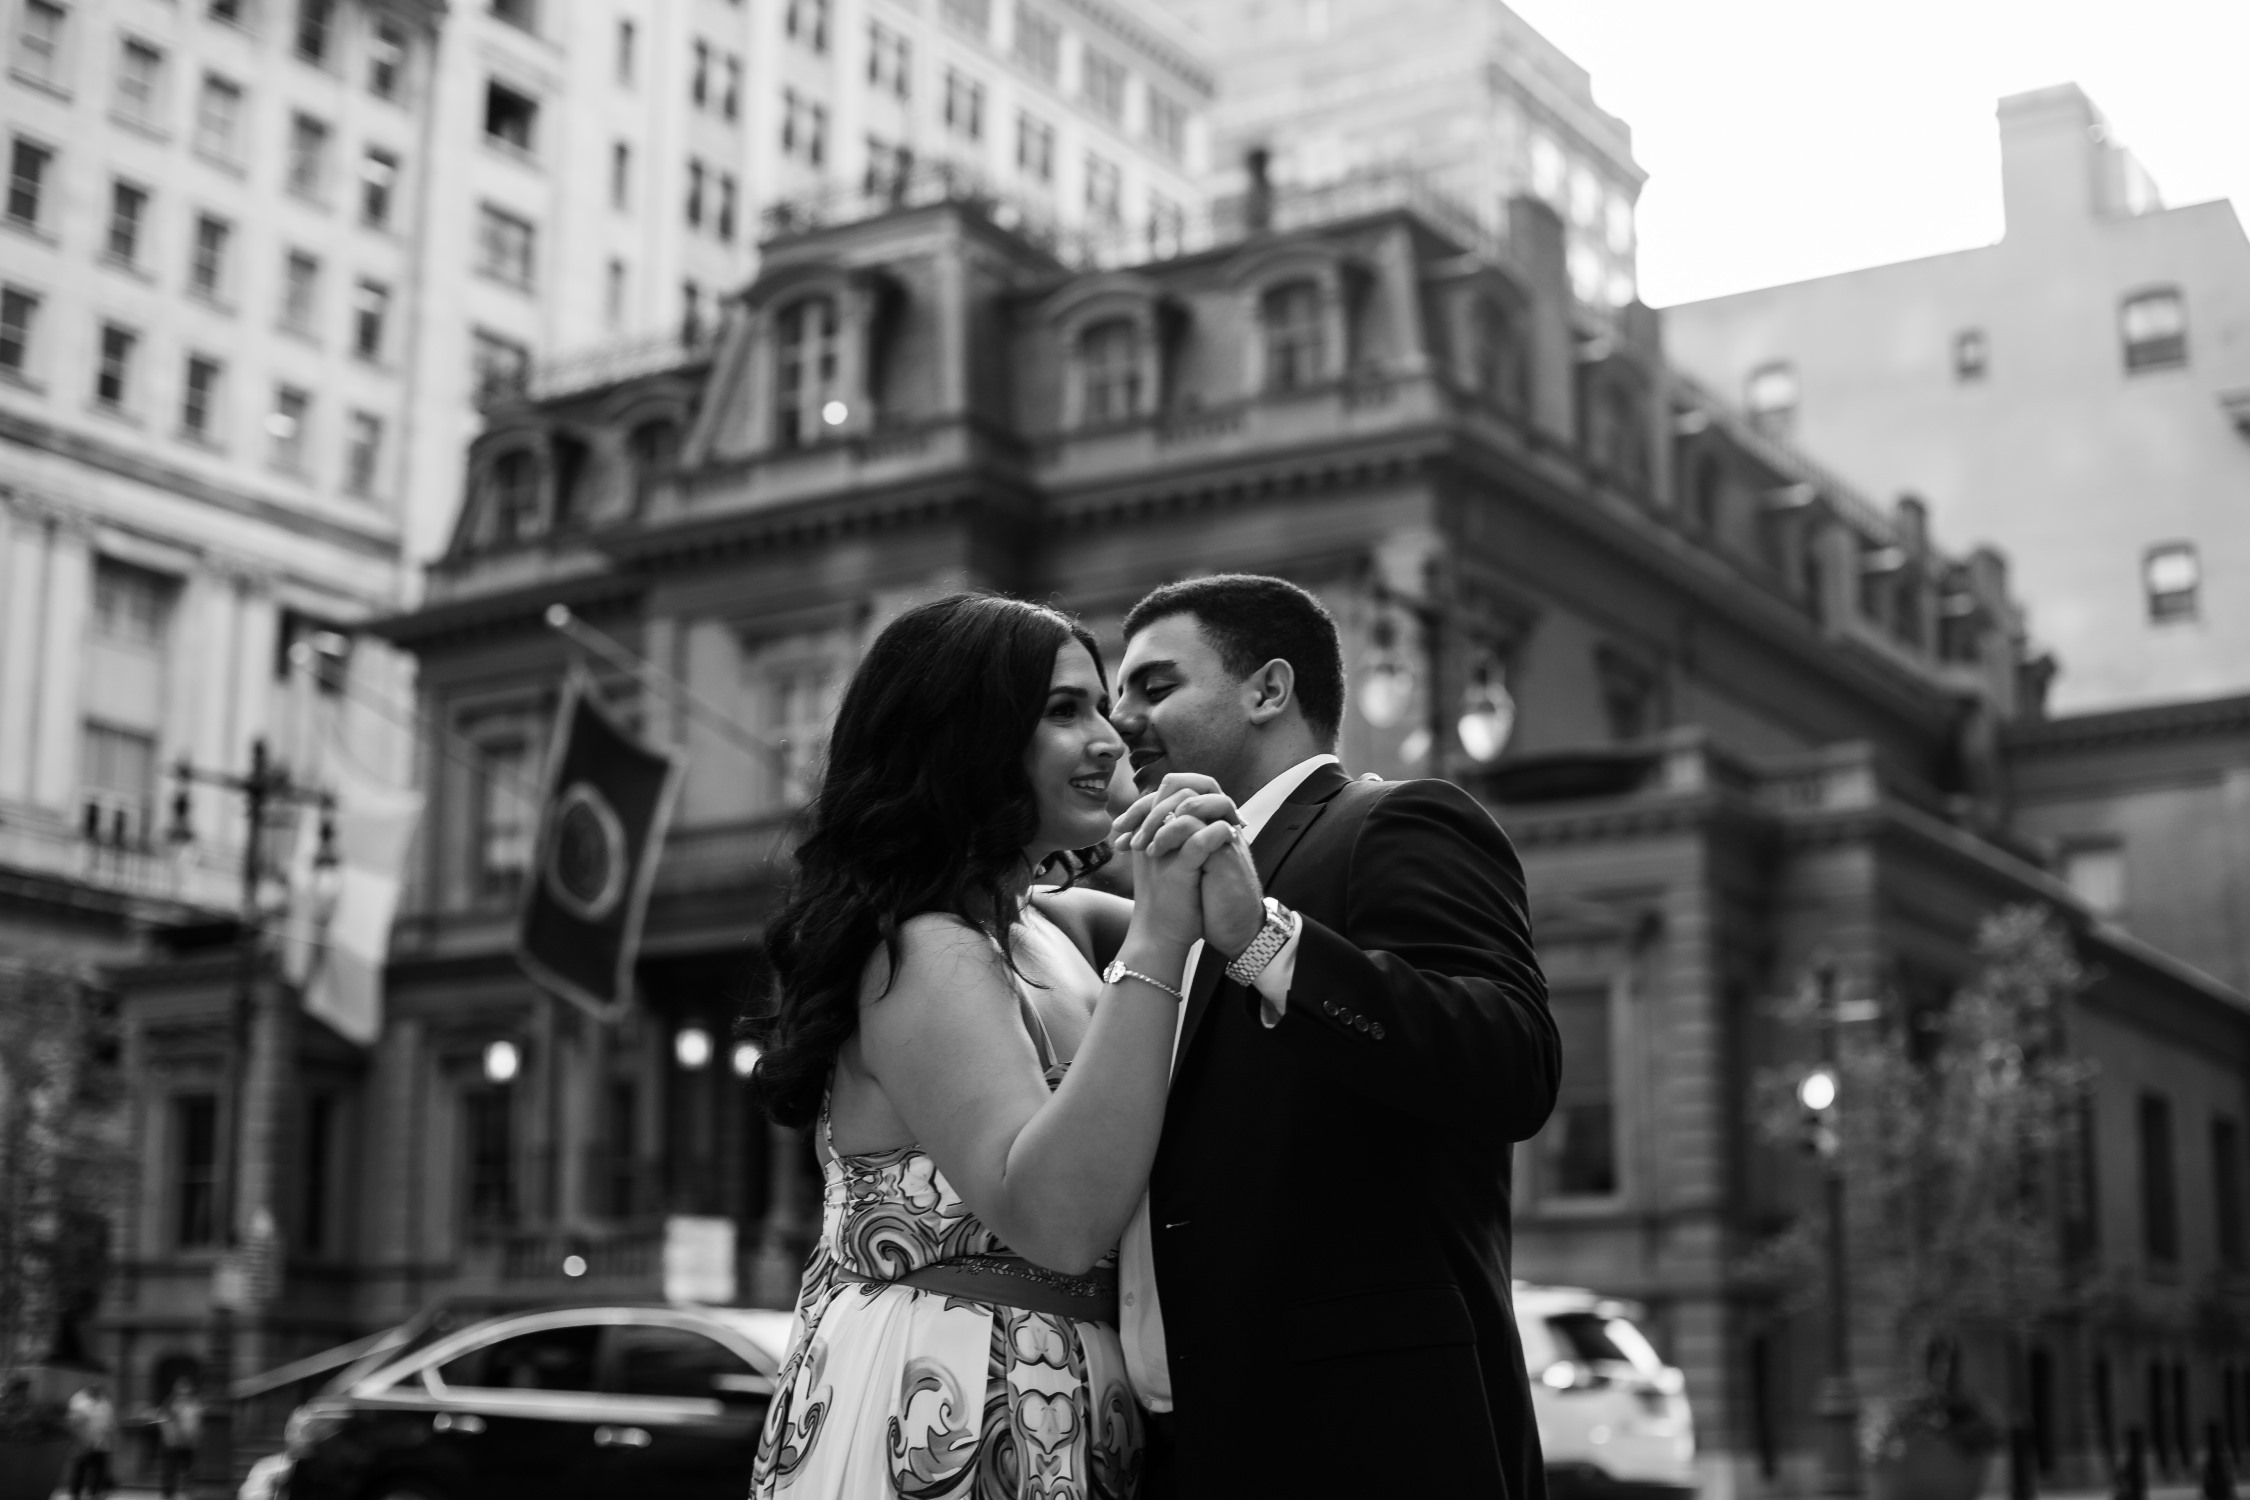 engagement photo shoot locations in philly